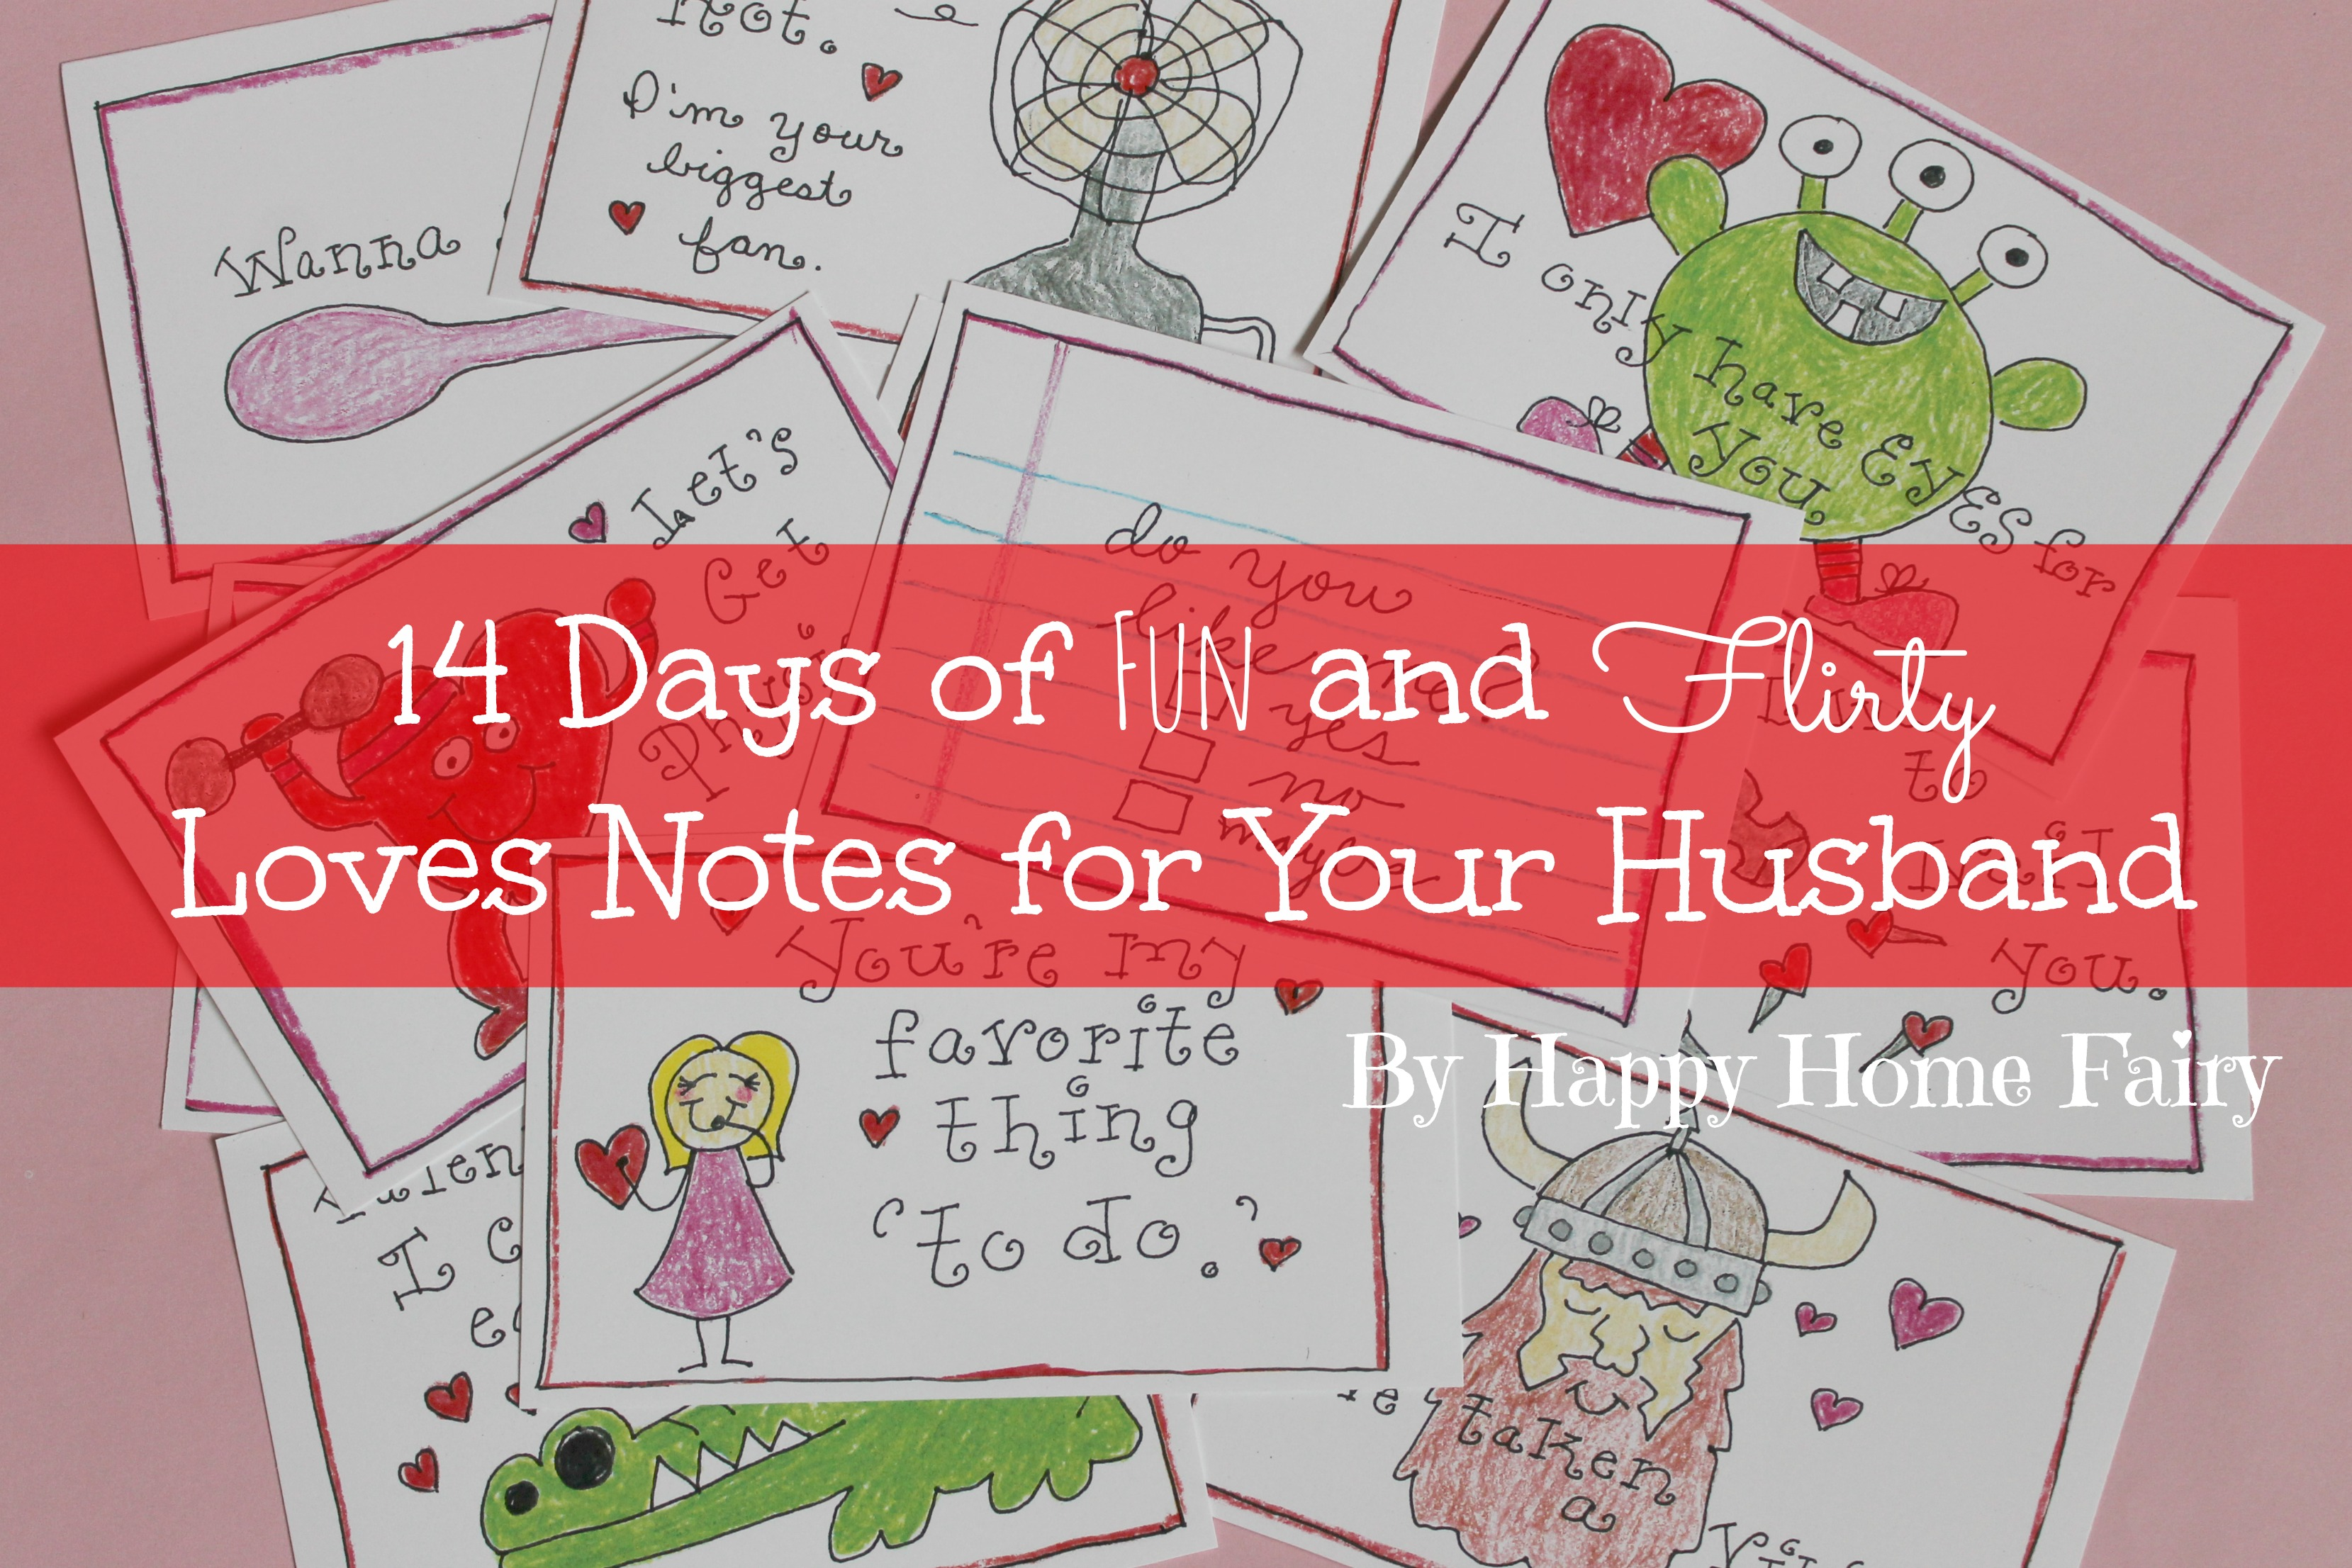 14 days of fun and flirty love notes for your husband - free